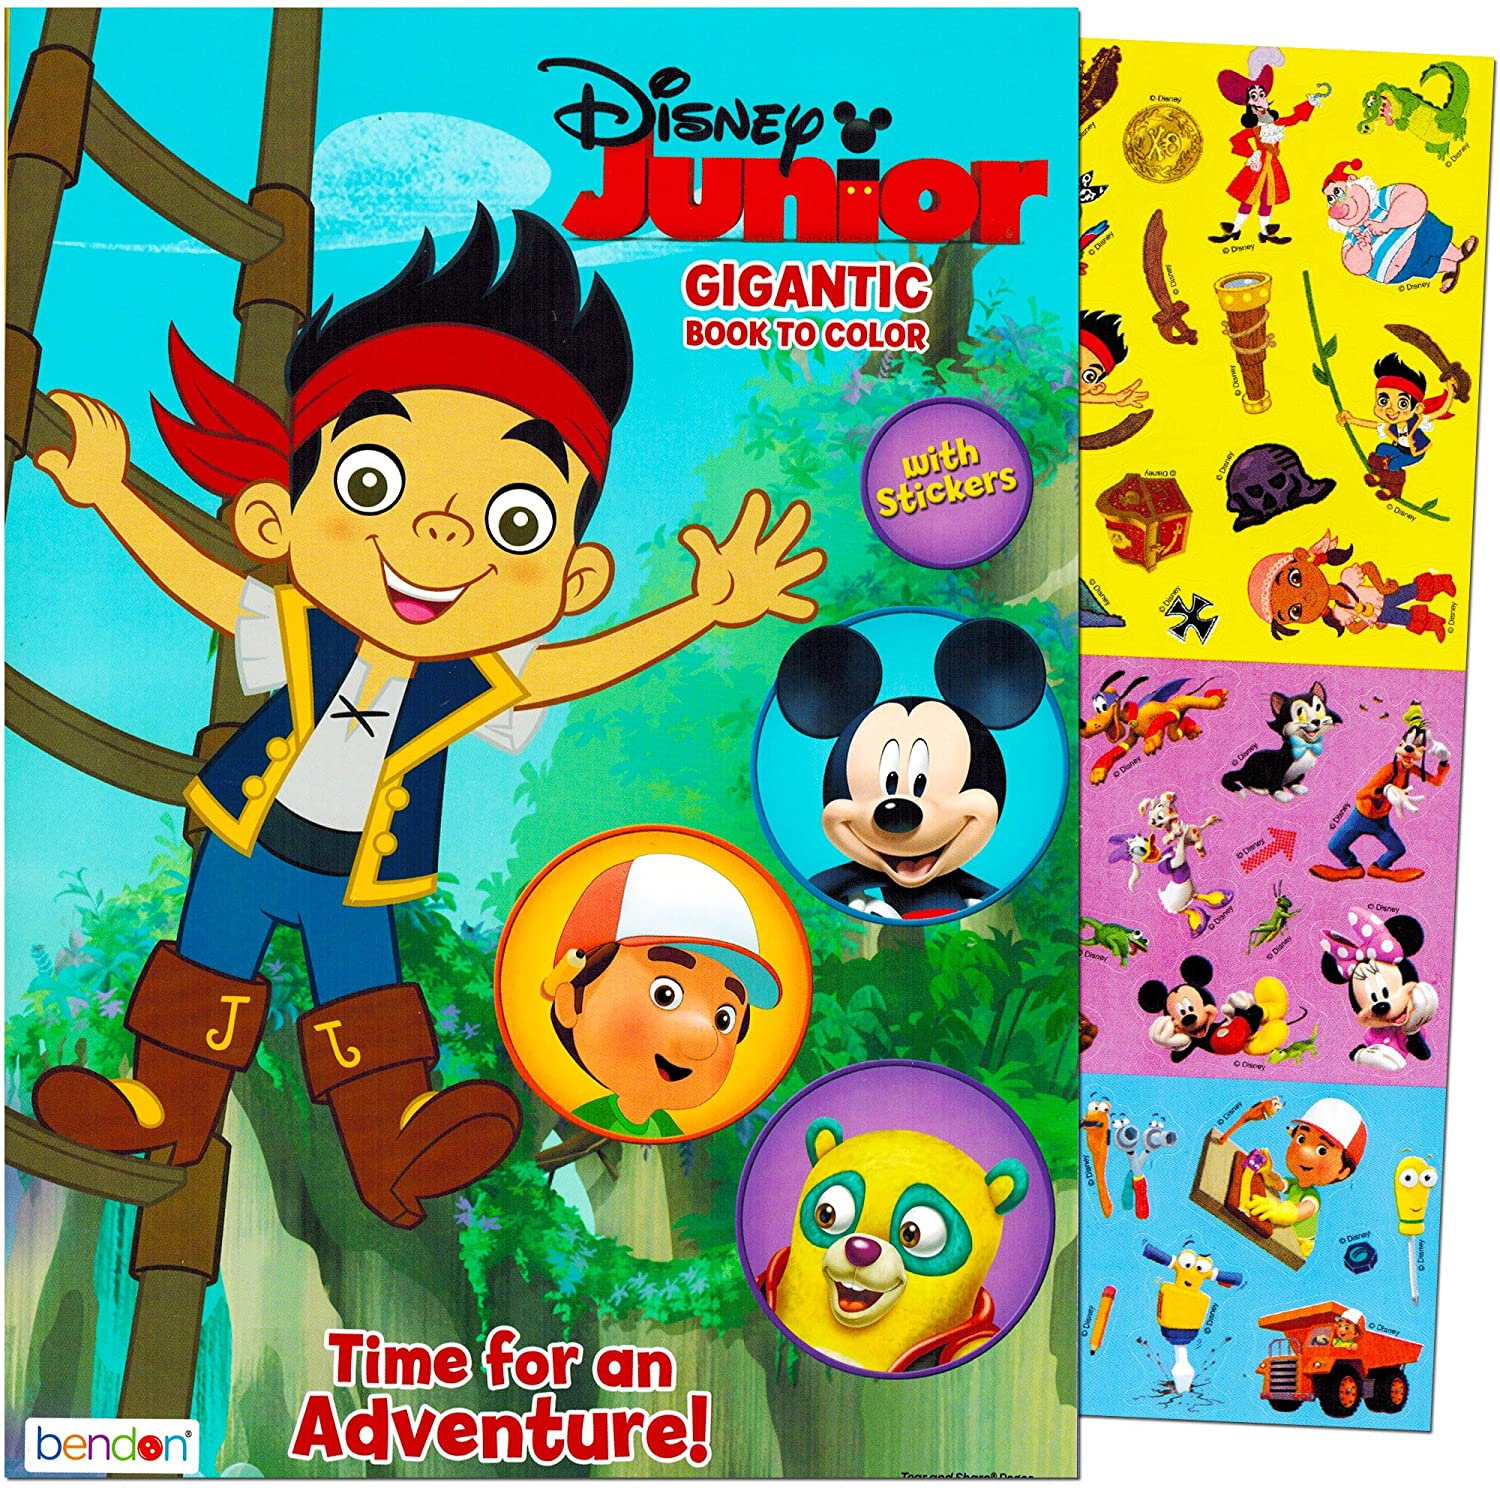 Amazon Disney Junior Gigantic Coloring Book For Boys With Stickers 224 Pages Featuring Mickey Mouse Jake And The Never Land Pirates Handy Manny